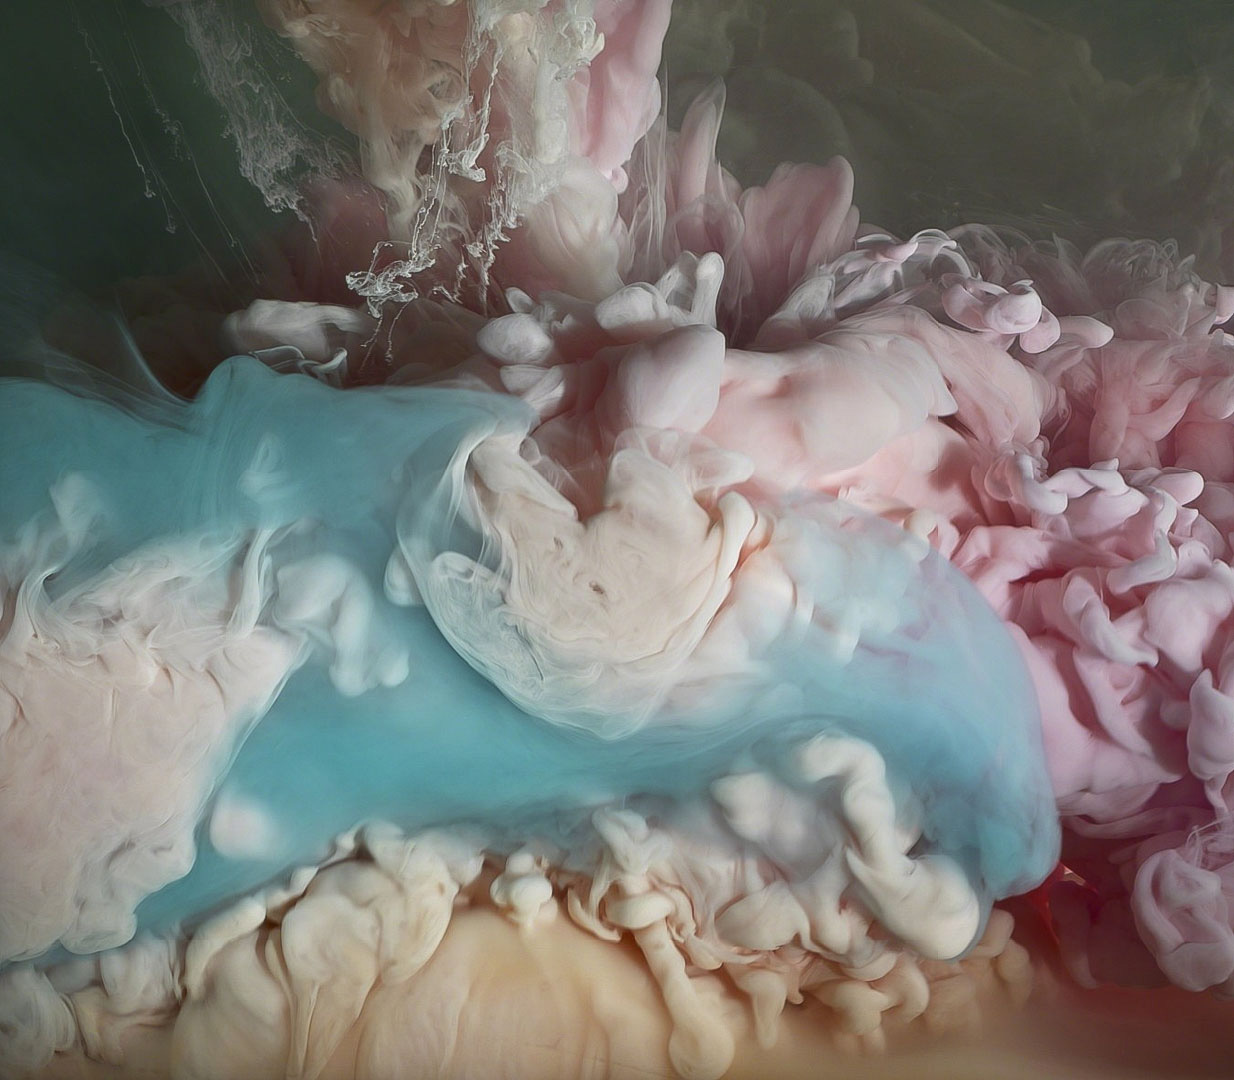 Paint in water photographed